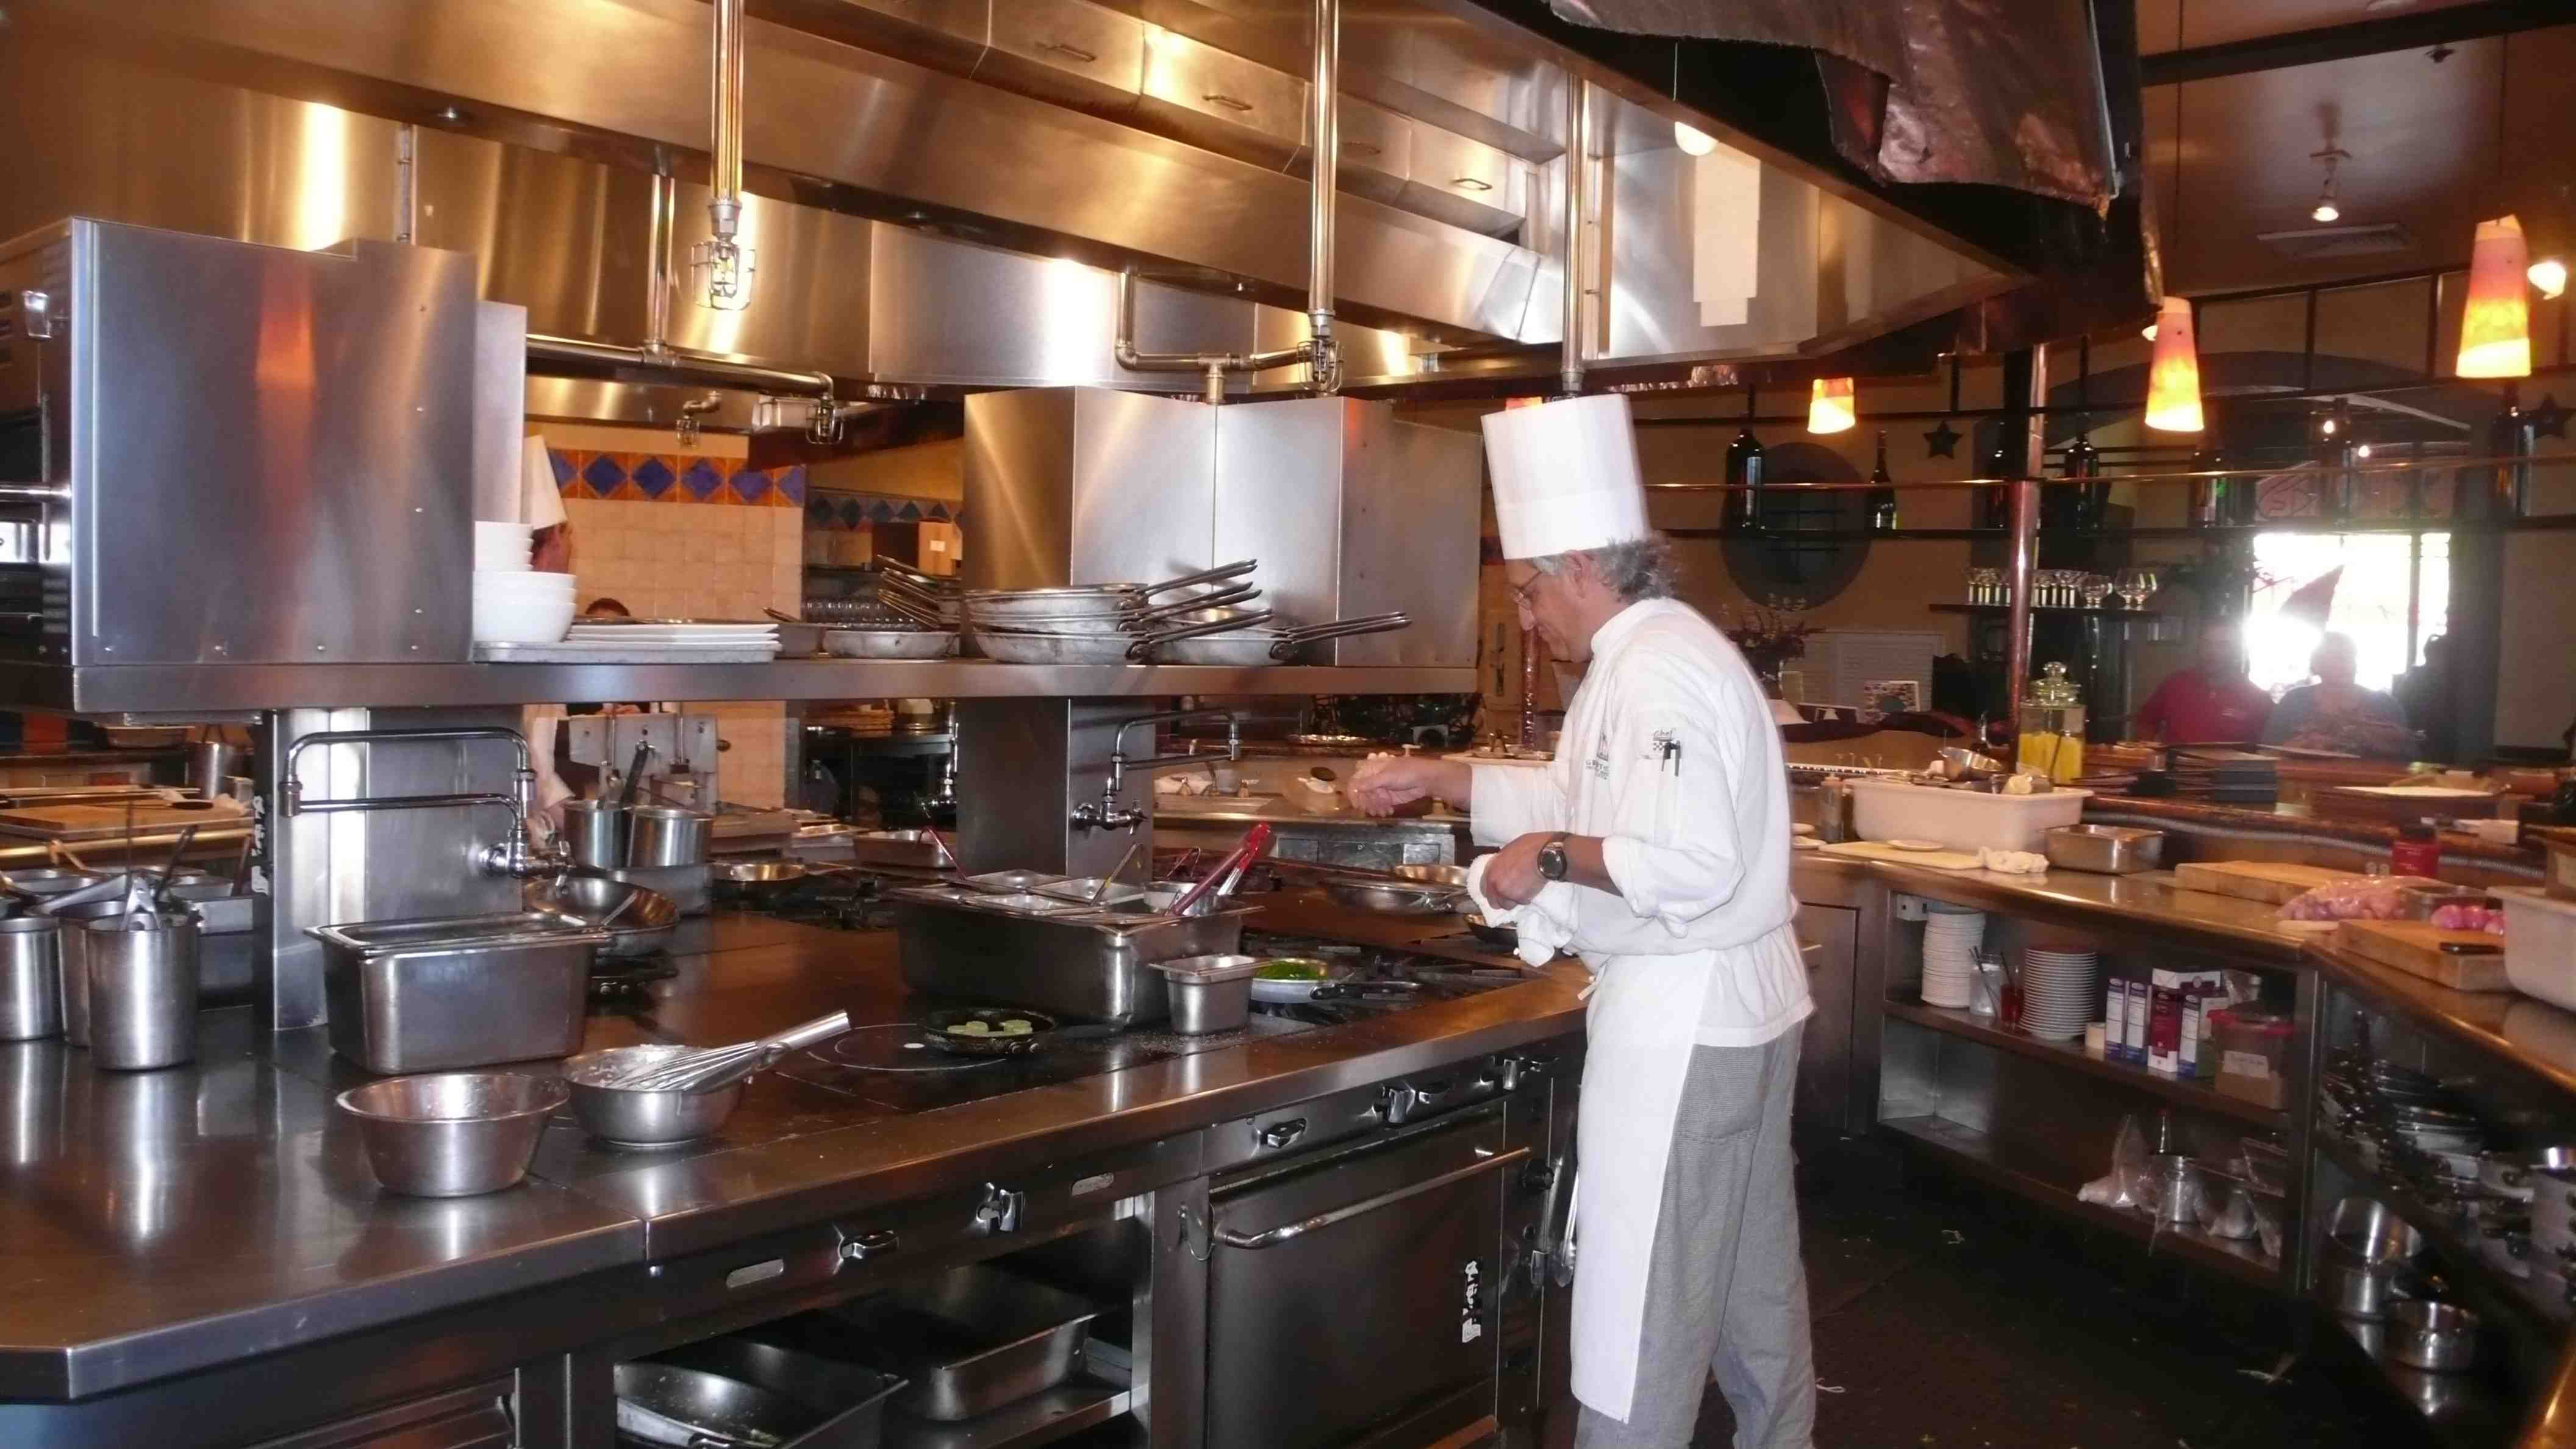 Restaurant Open Kitchen Concept Google Search Work Pinterest Restaurant Kitchen Open